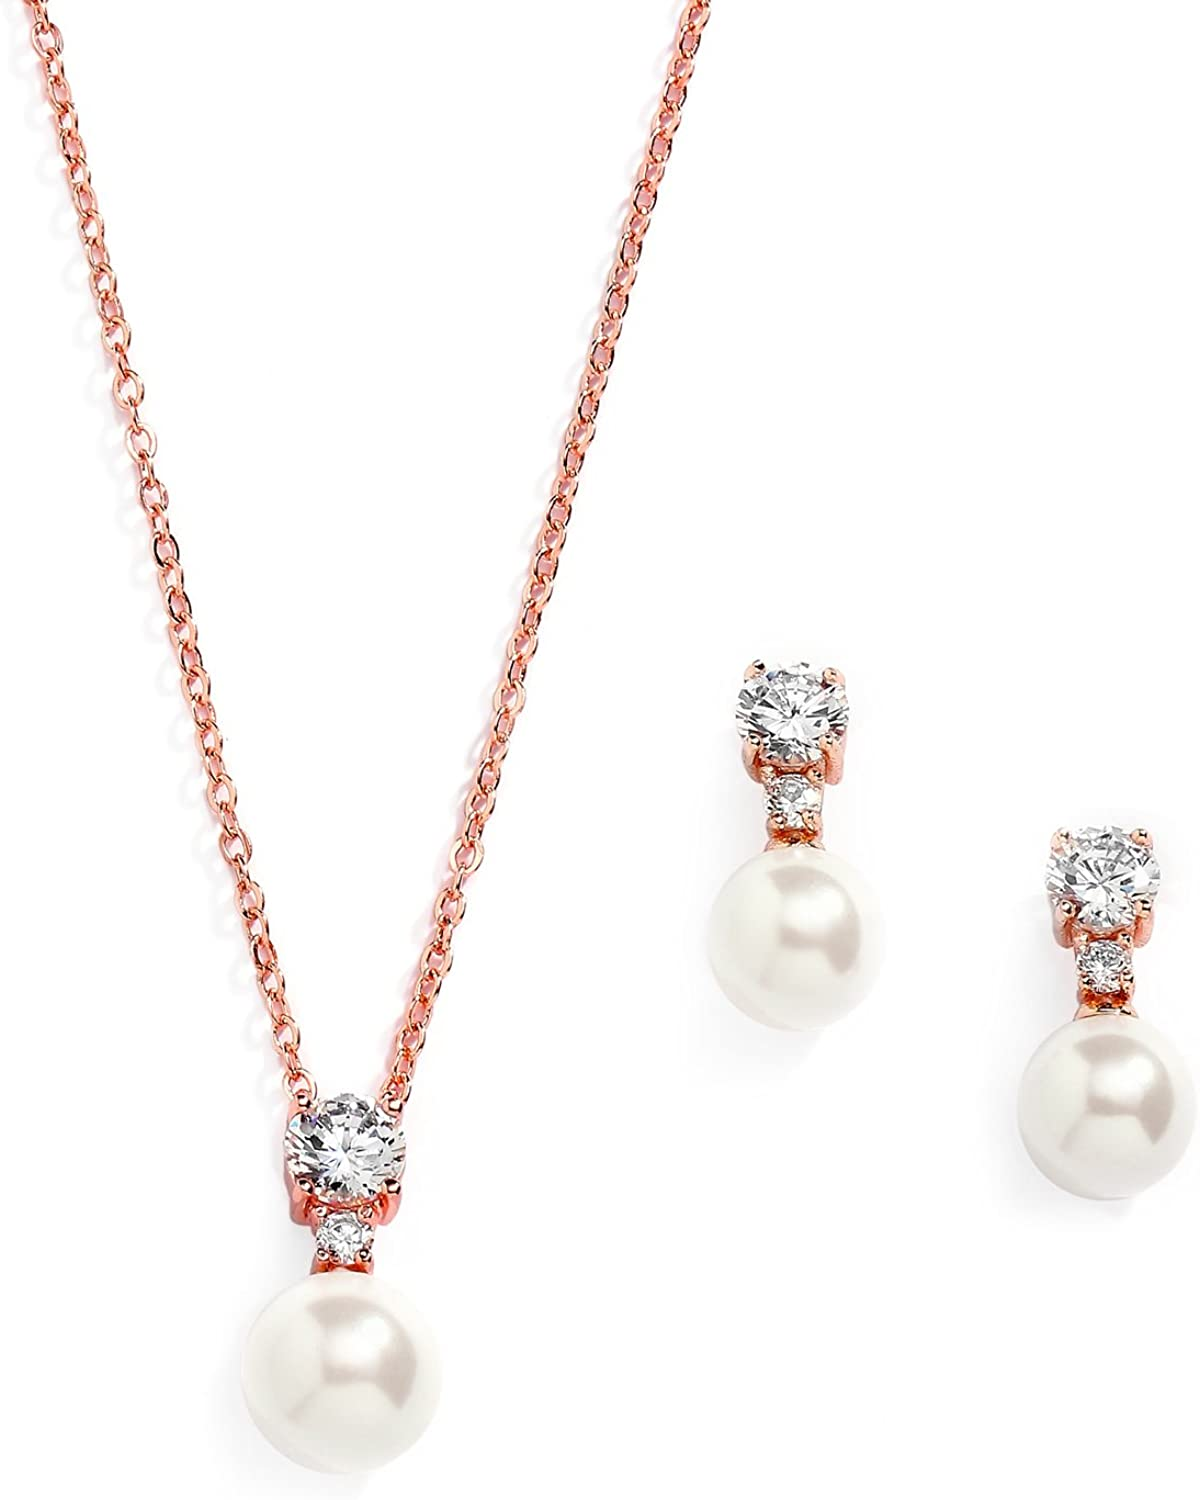 Set of 4 Rose Gold Floating Single Pearl Jewelry Set Necklace Bracelet Earrings Bridesmaid Pearl Jewelry Set